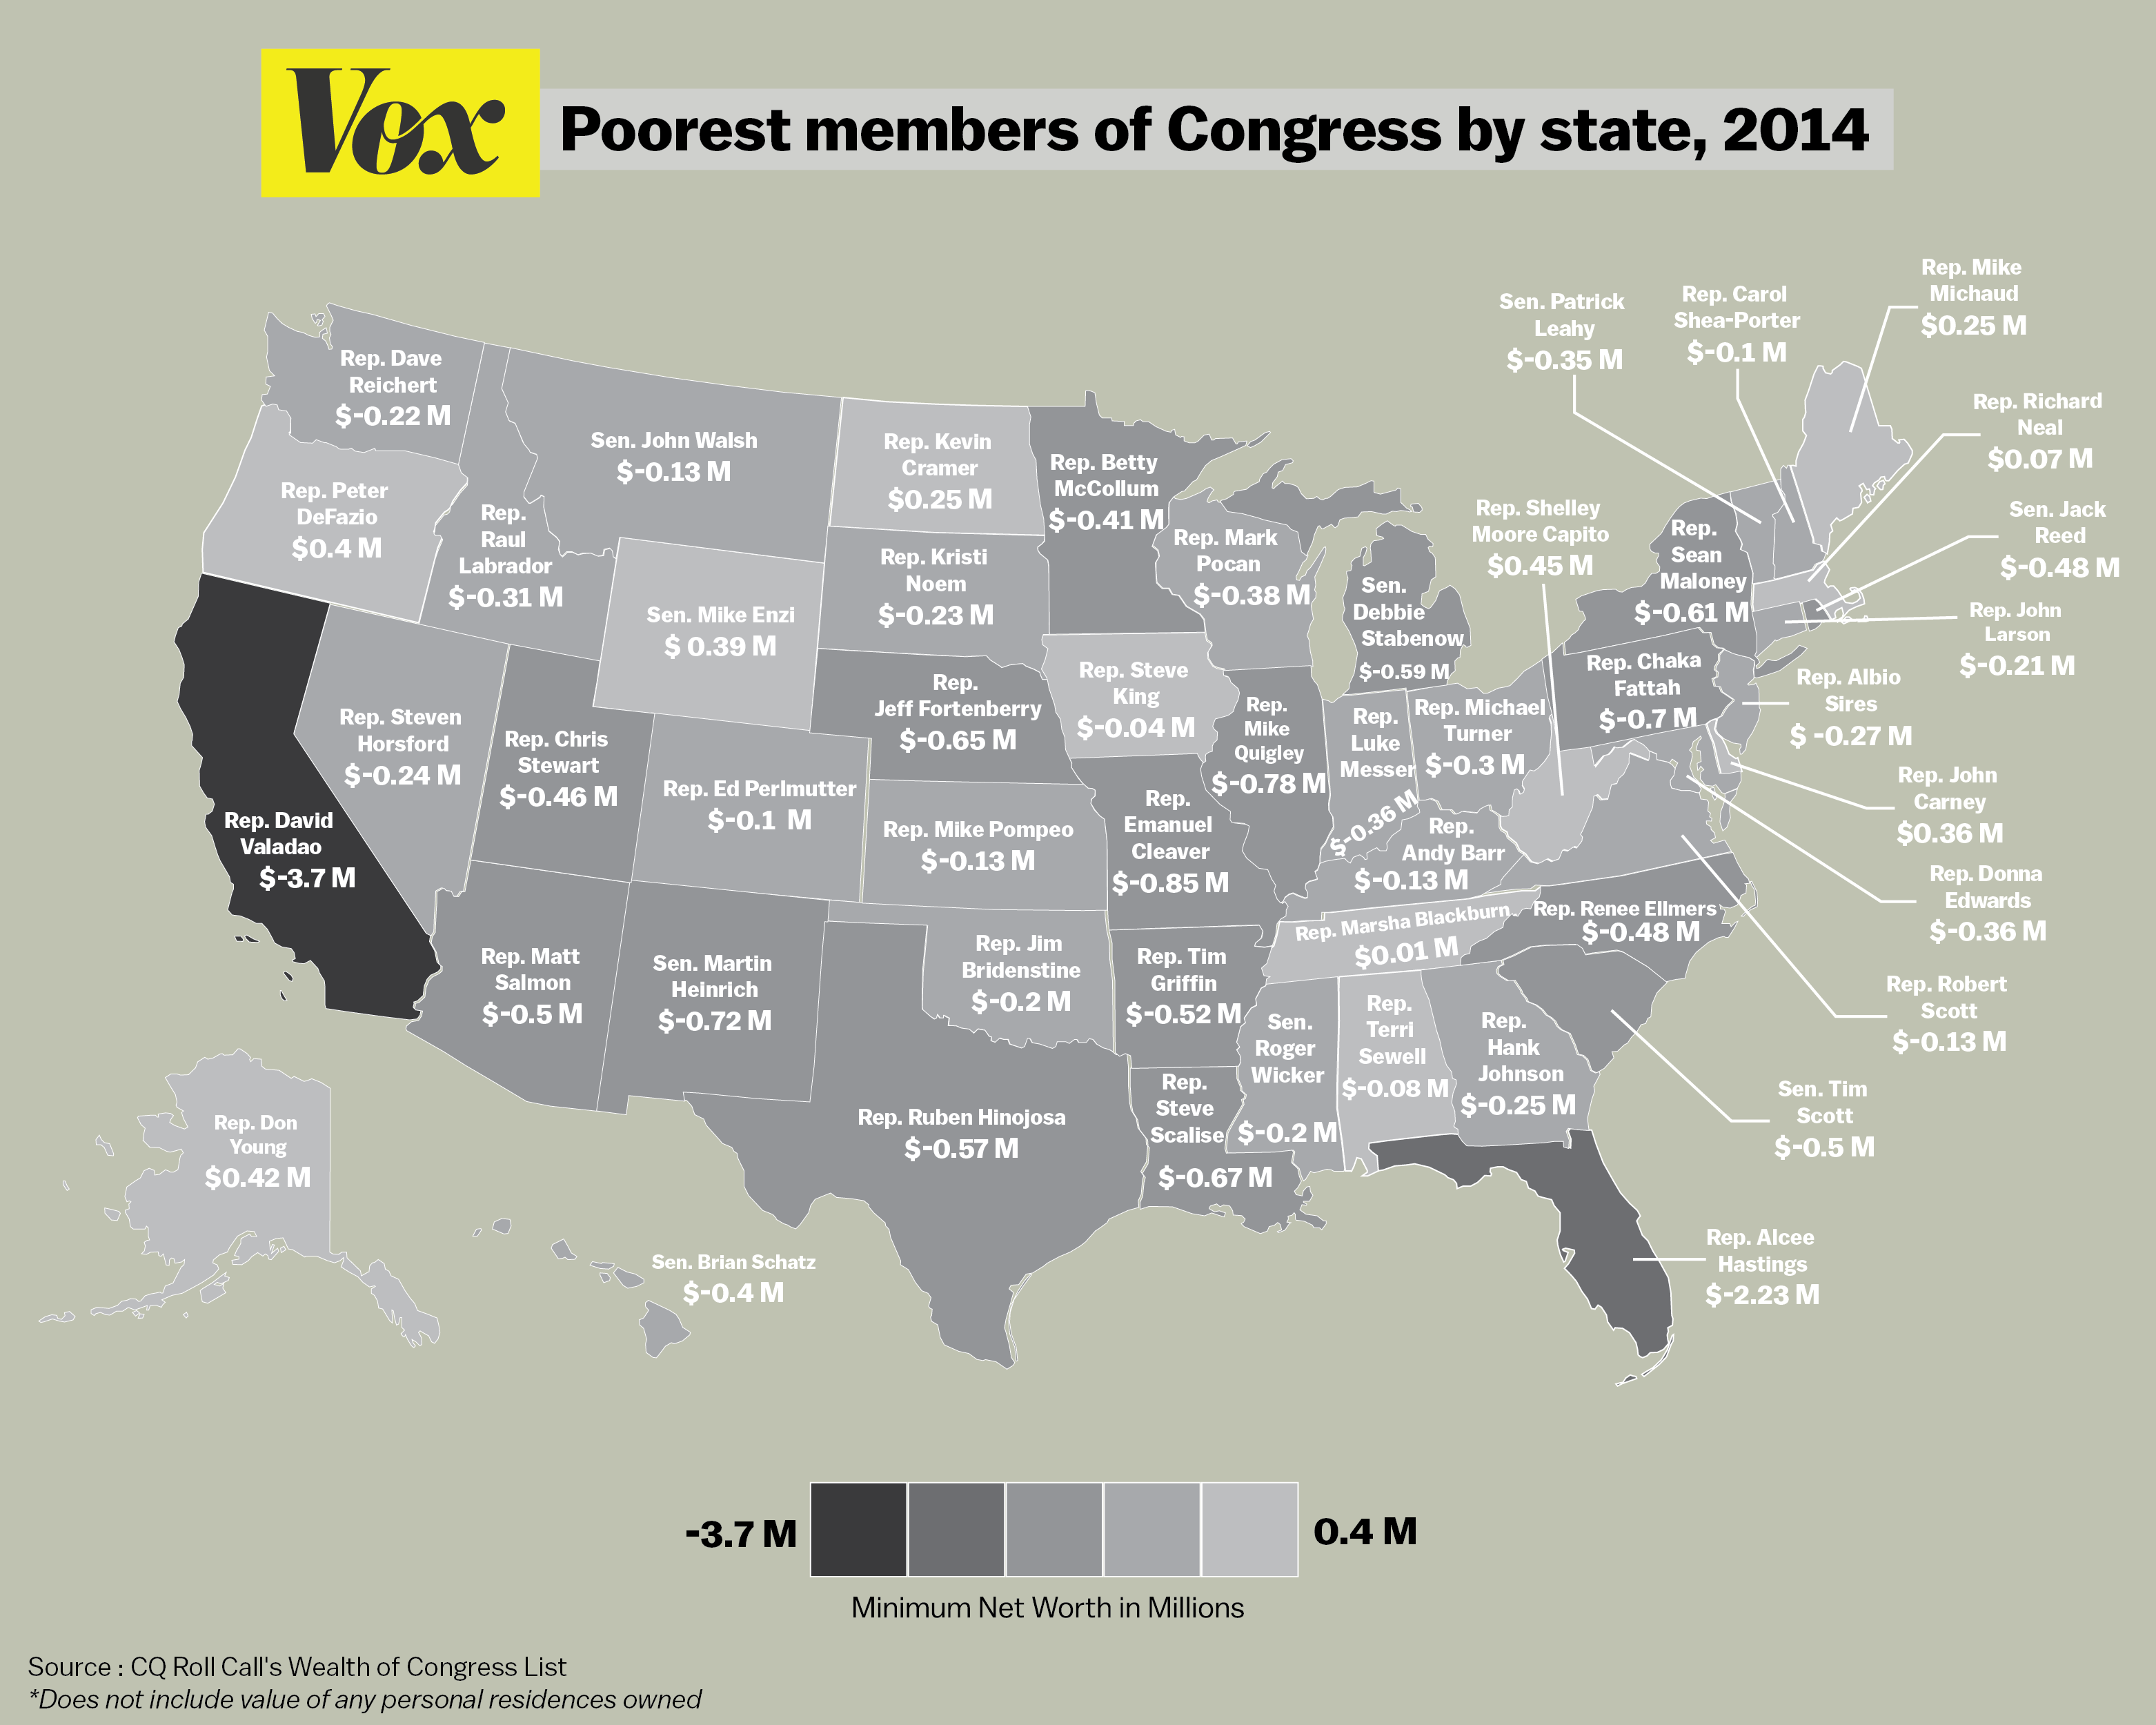 Senators By State Map.Map The Poorest Member Of Congress In Each State Vox